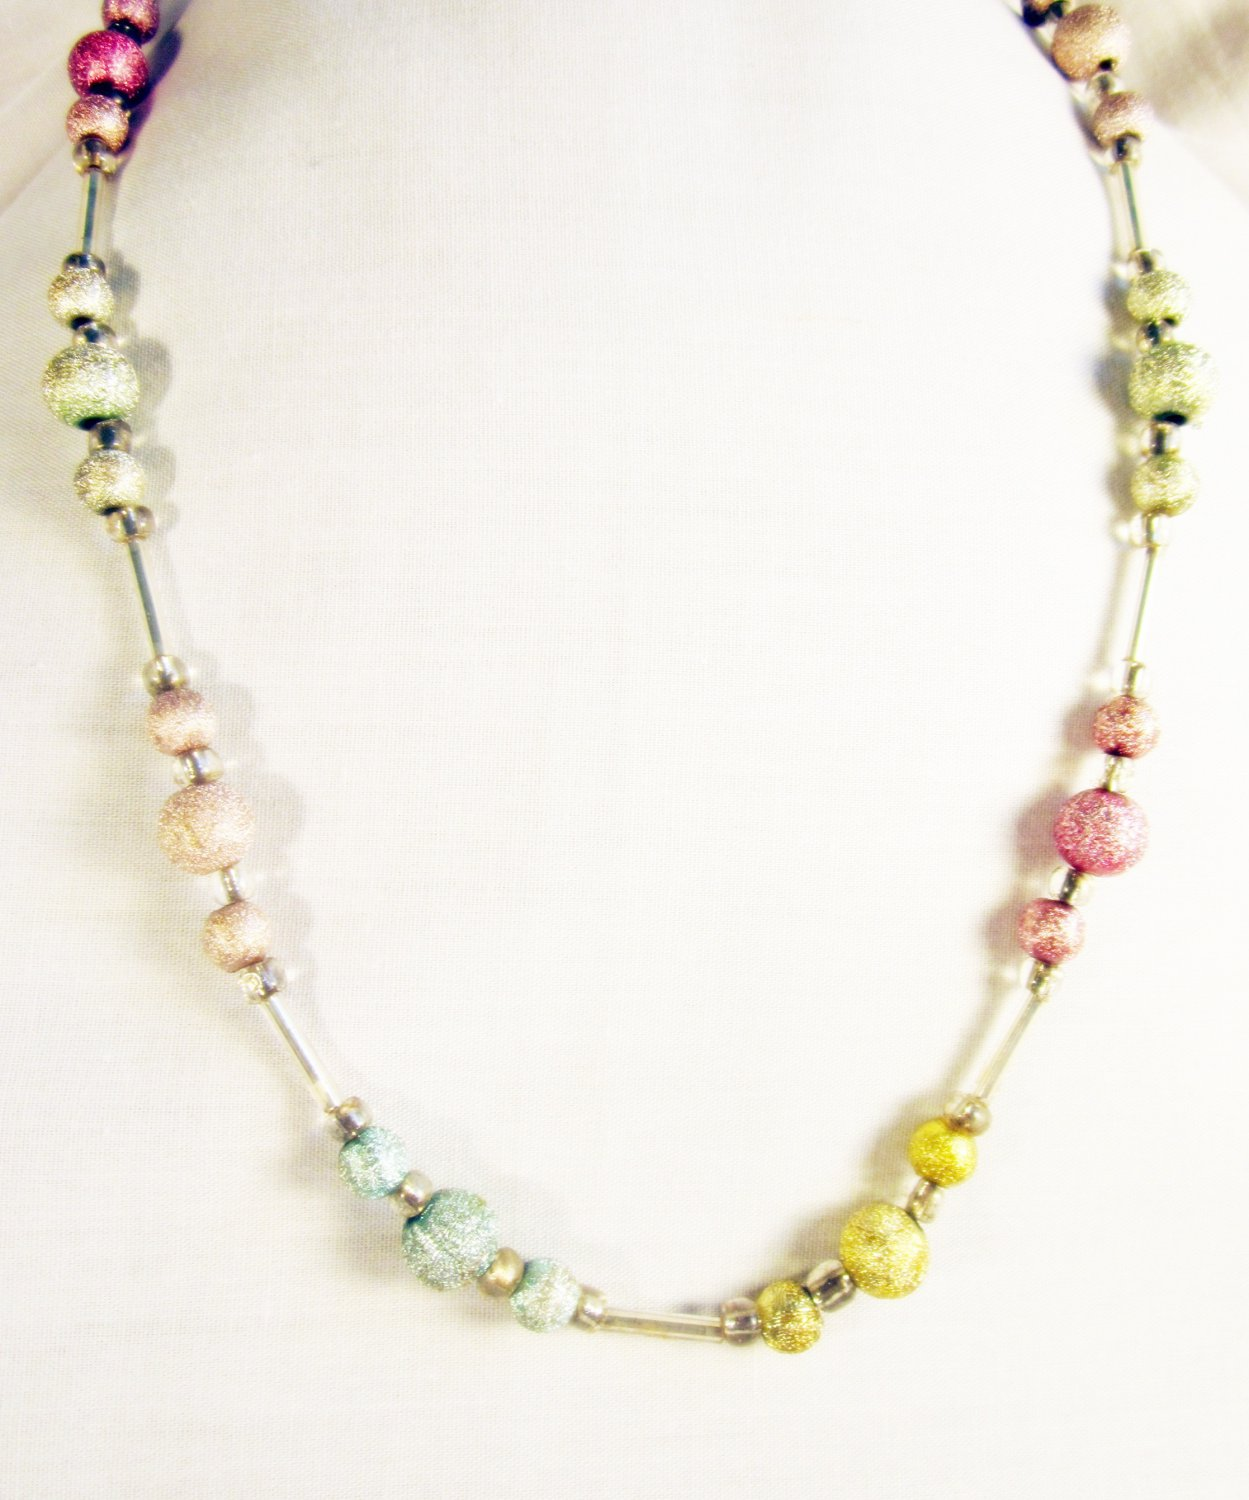 N5 - pastel beaded necklace